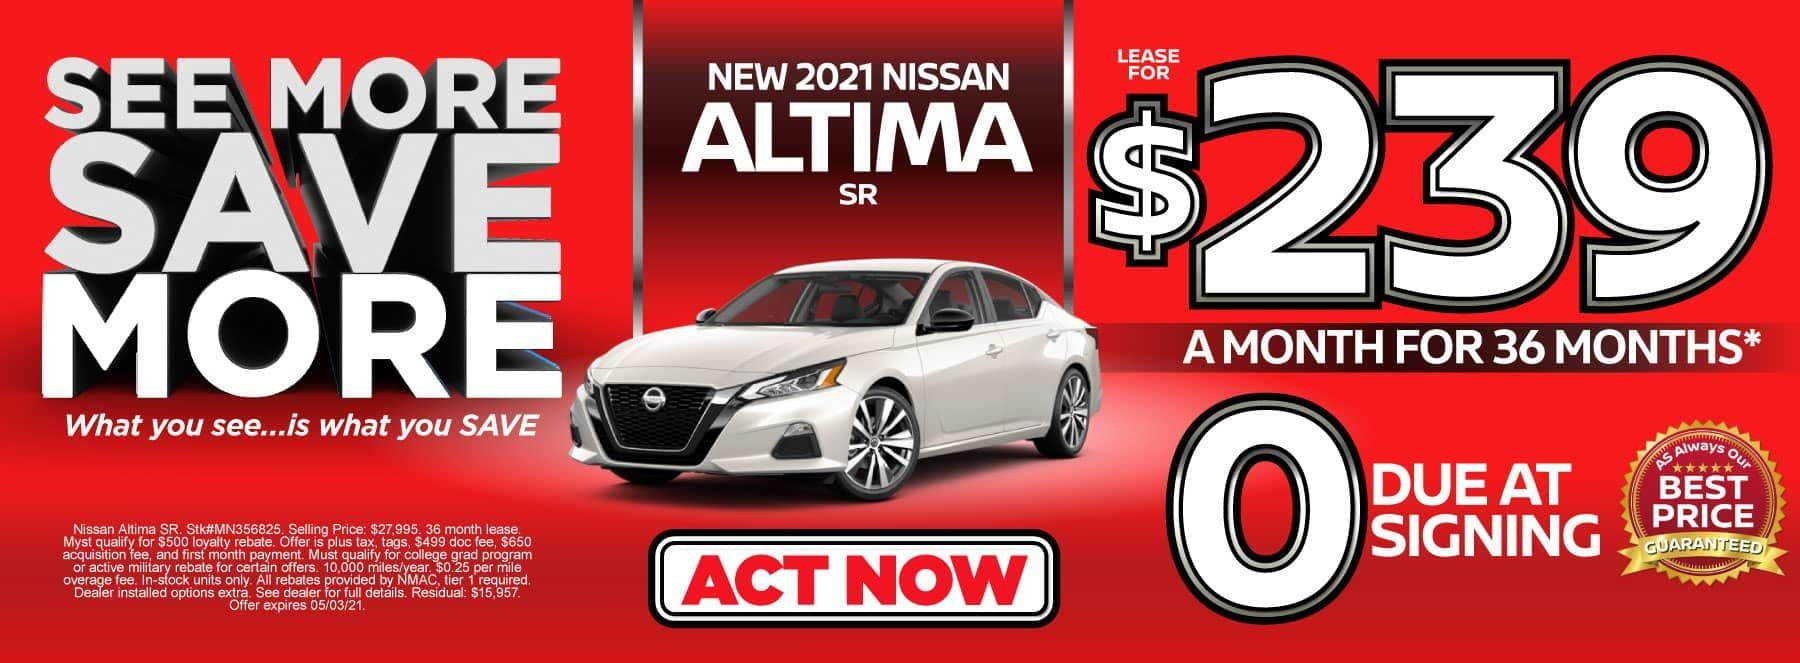 altima special banner